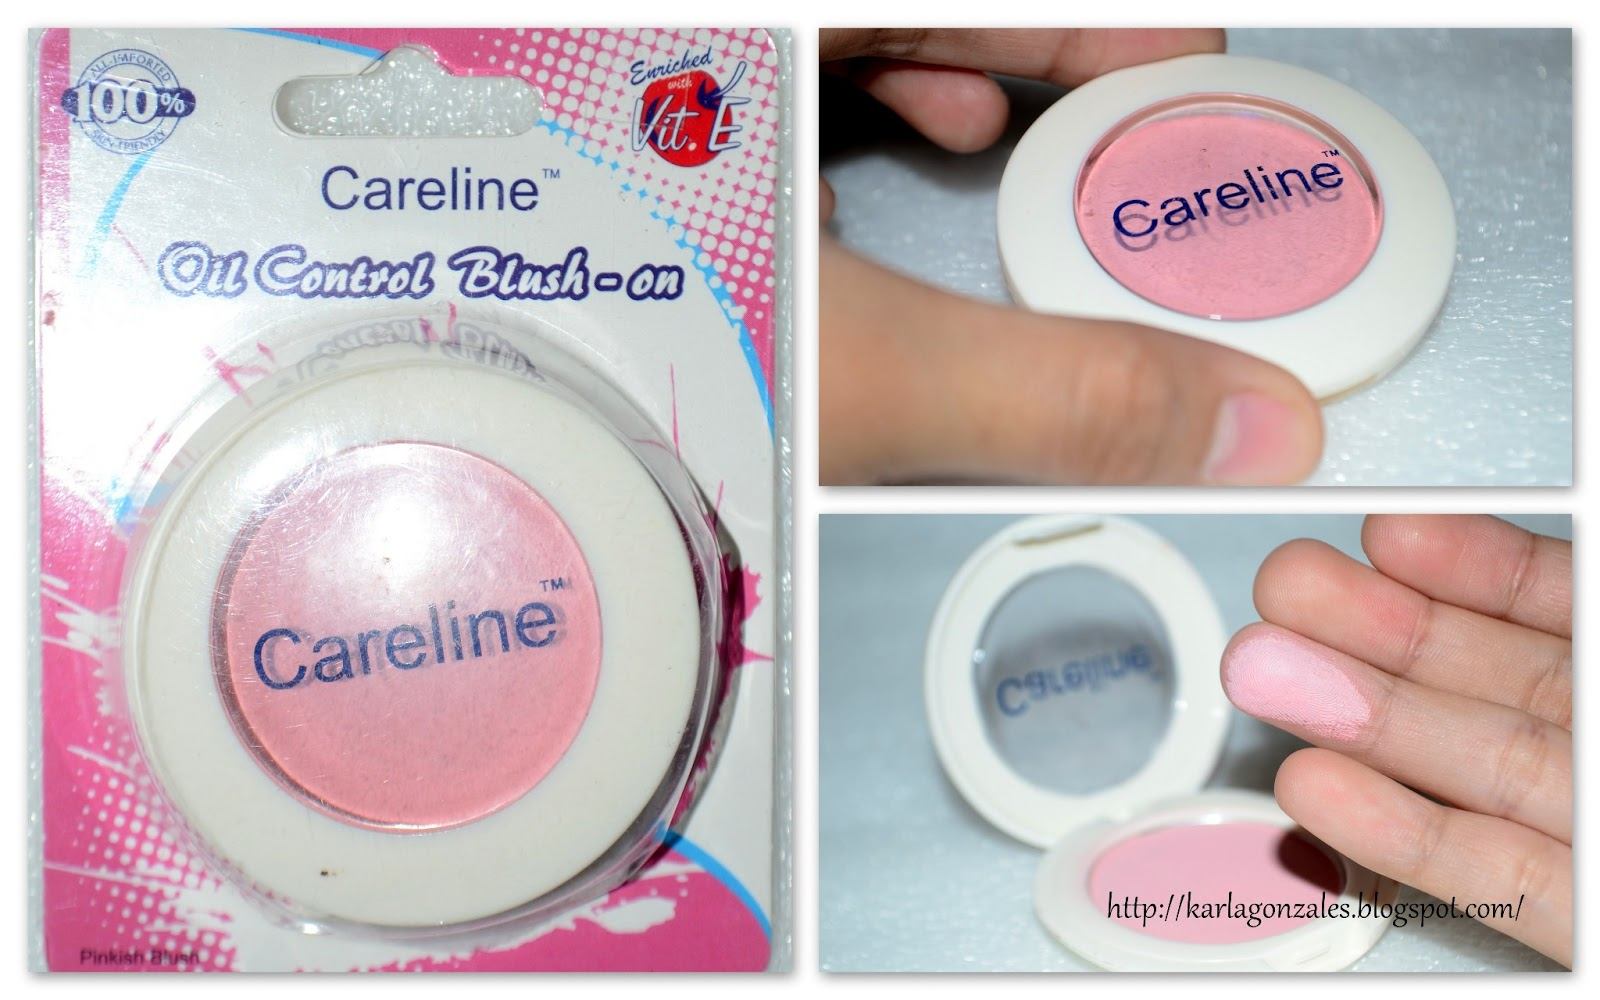 Karla Gonzales: Review on: Careline Oil Control Blush-on